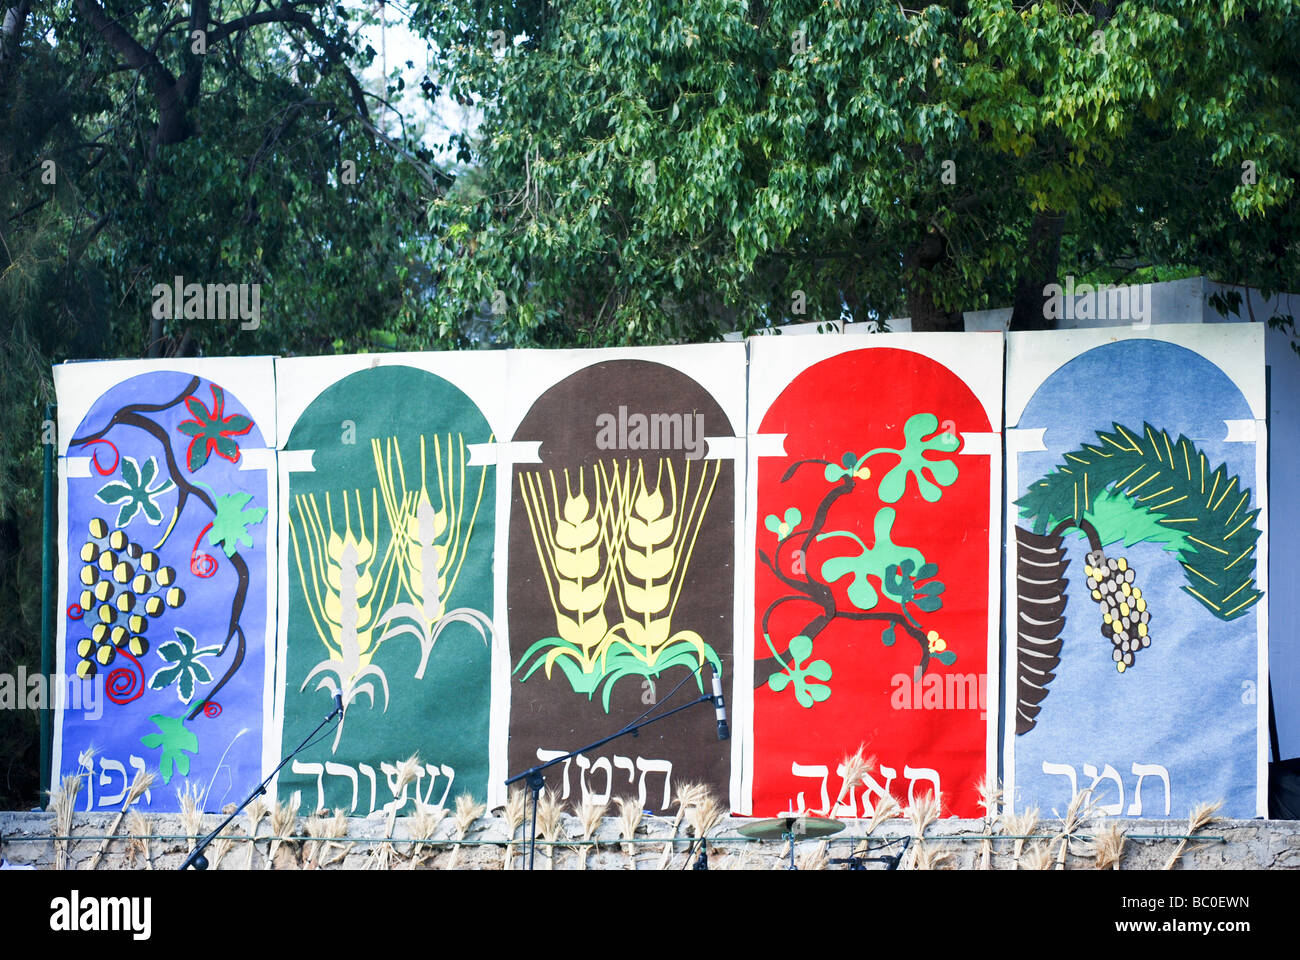 Shavuot celebration End of Harvest season at the Mikveh Israel school The Seven Species - Stock Image